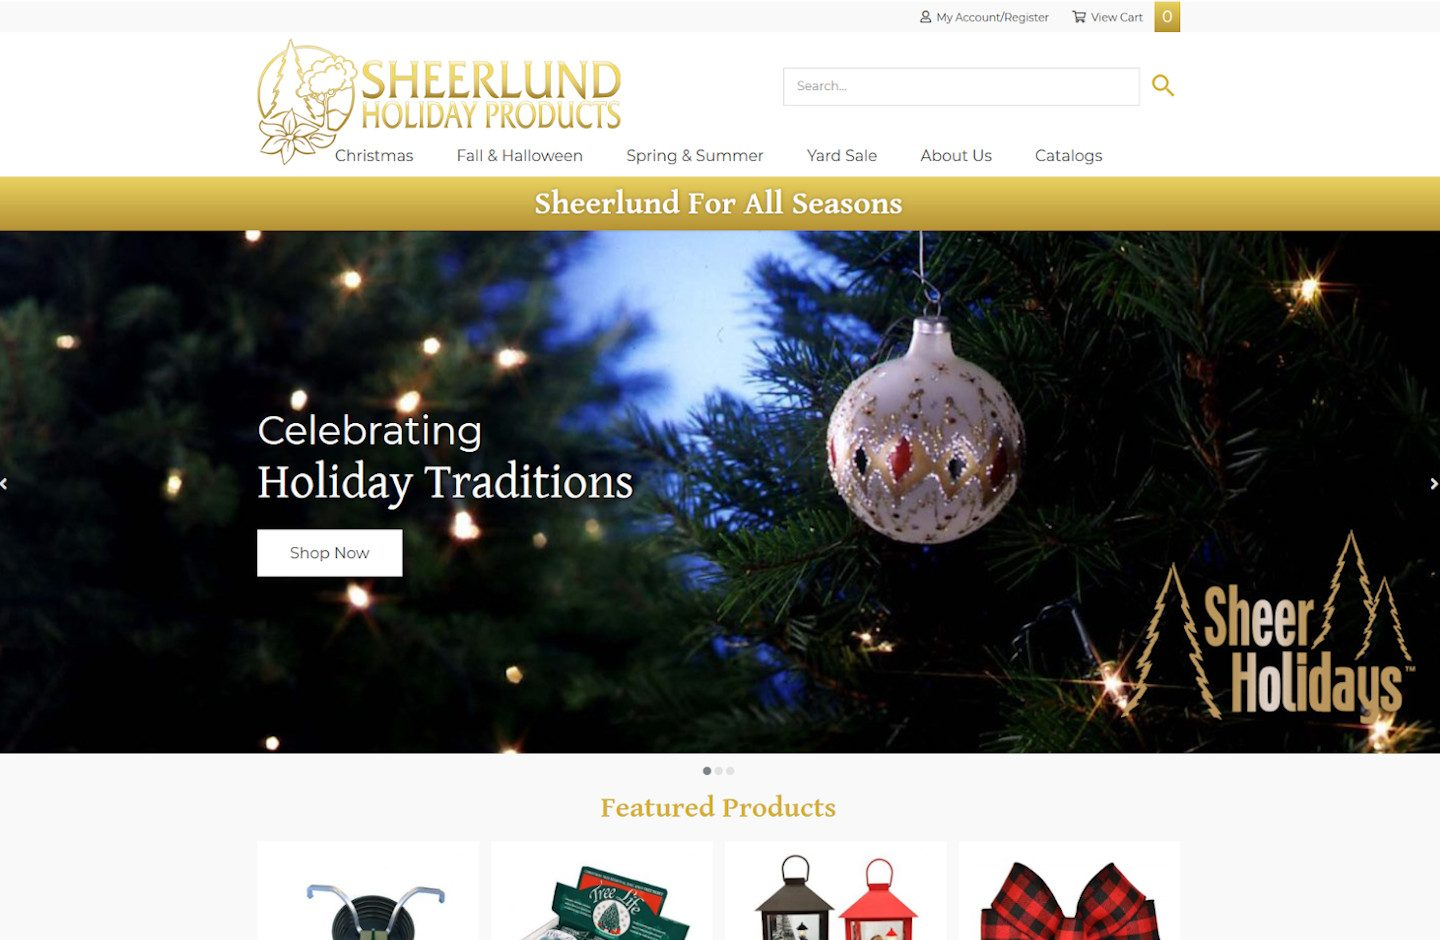 Sheerlund Holiday Products